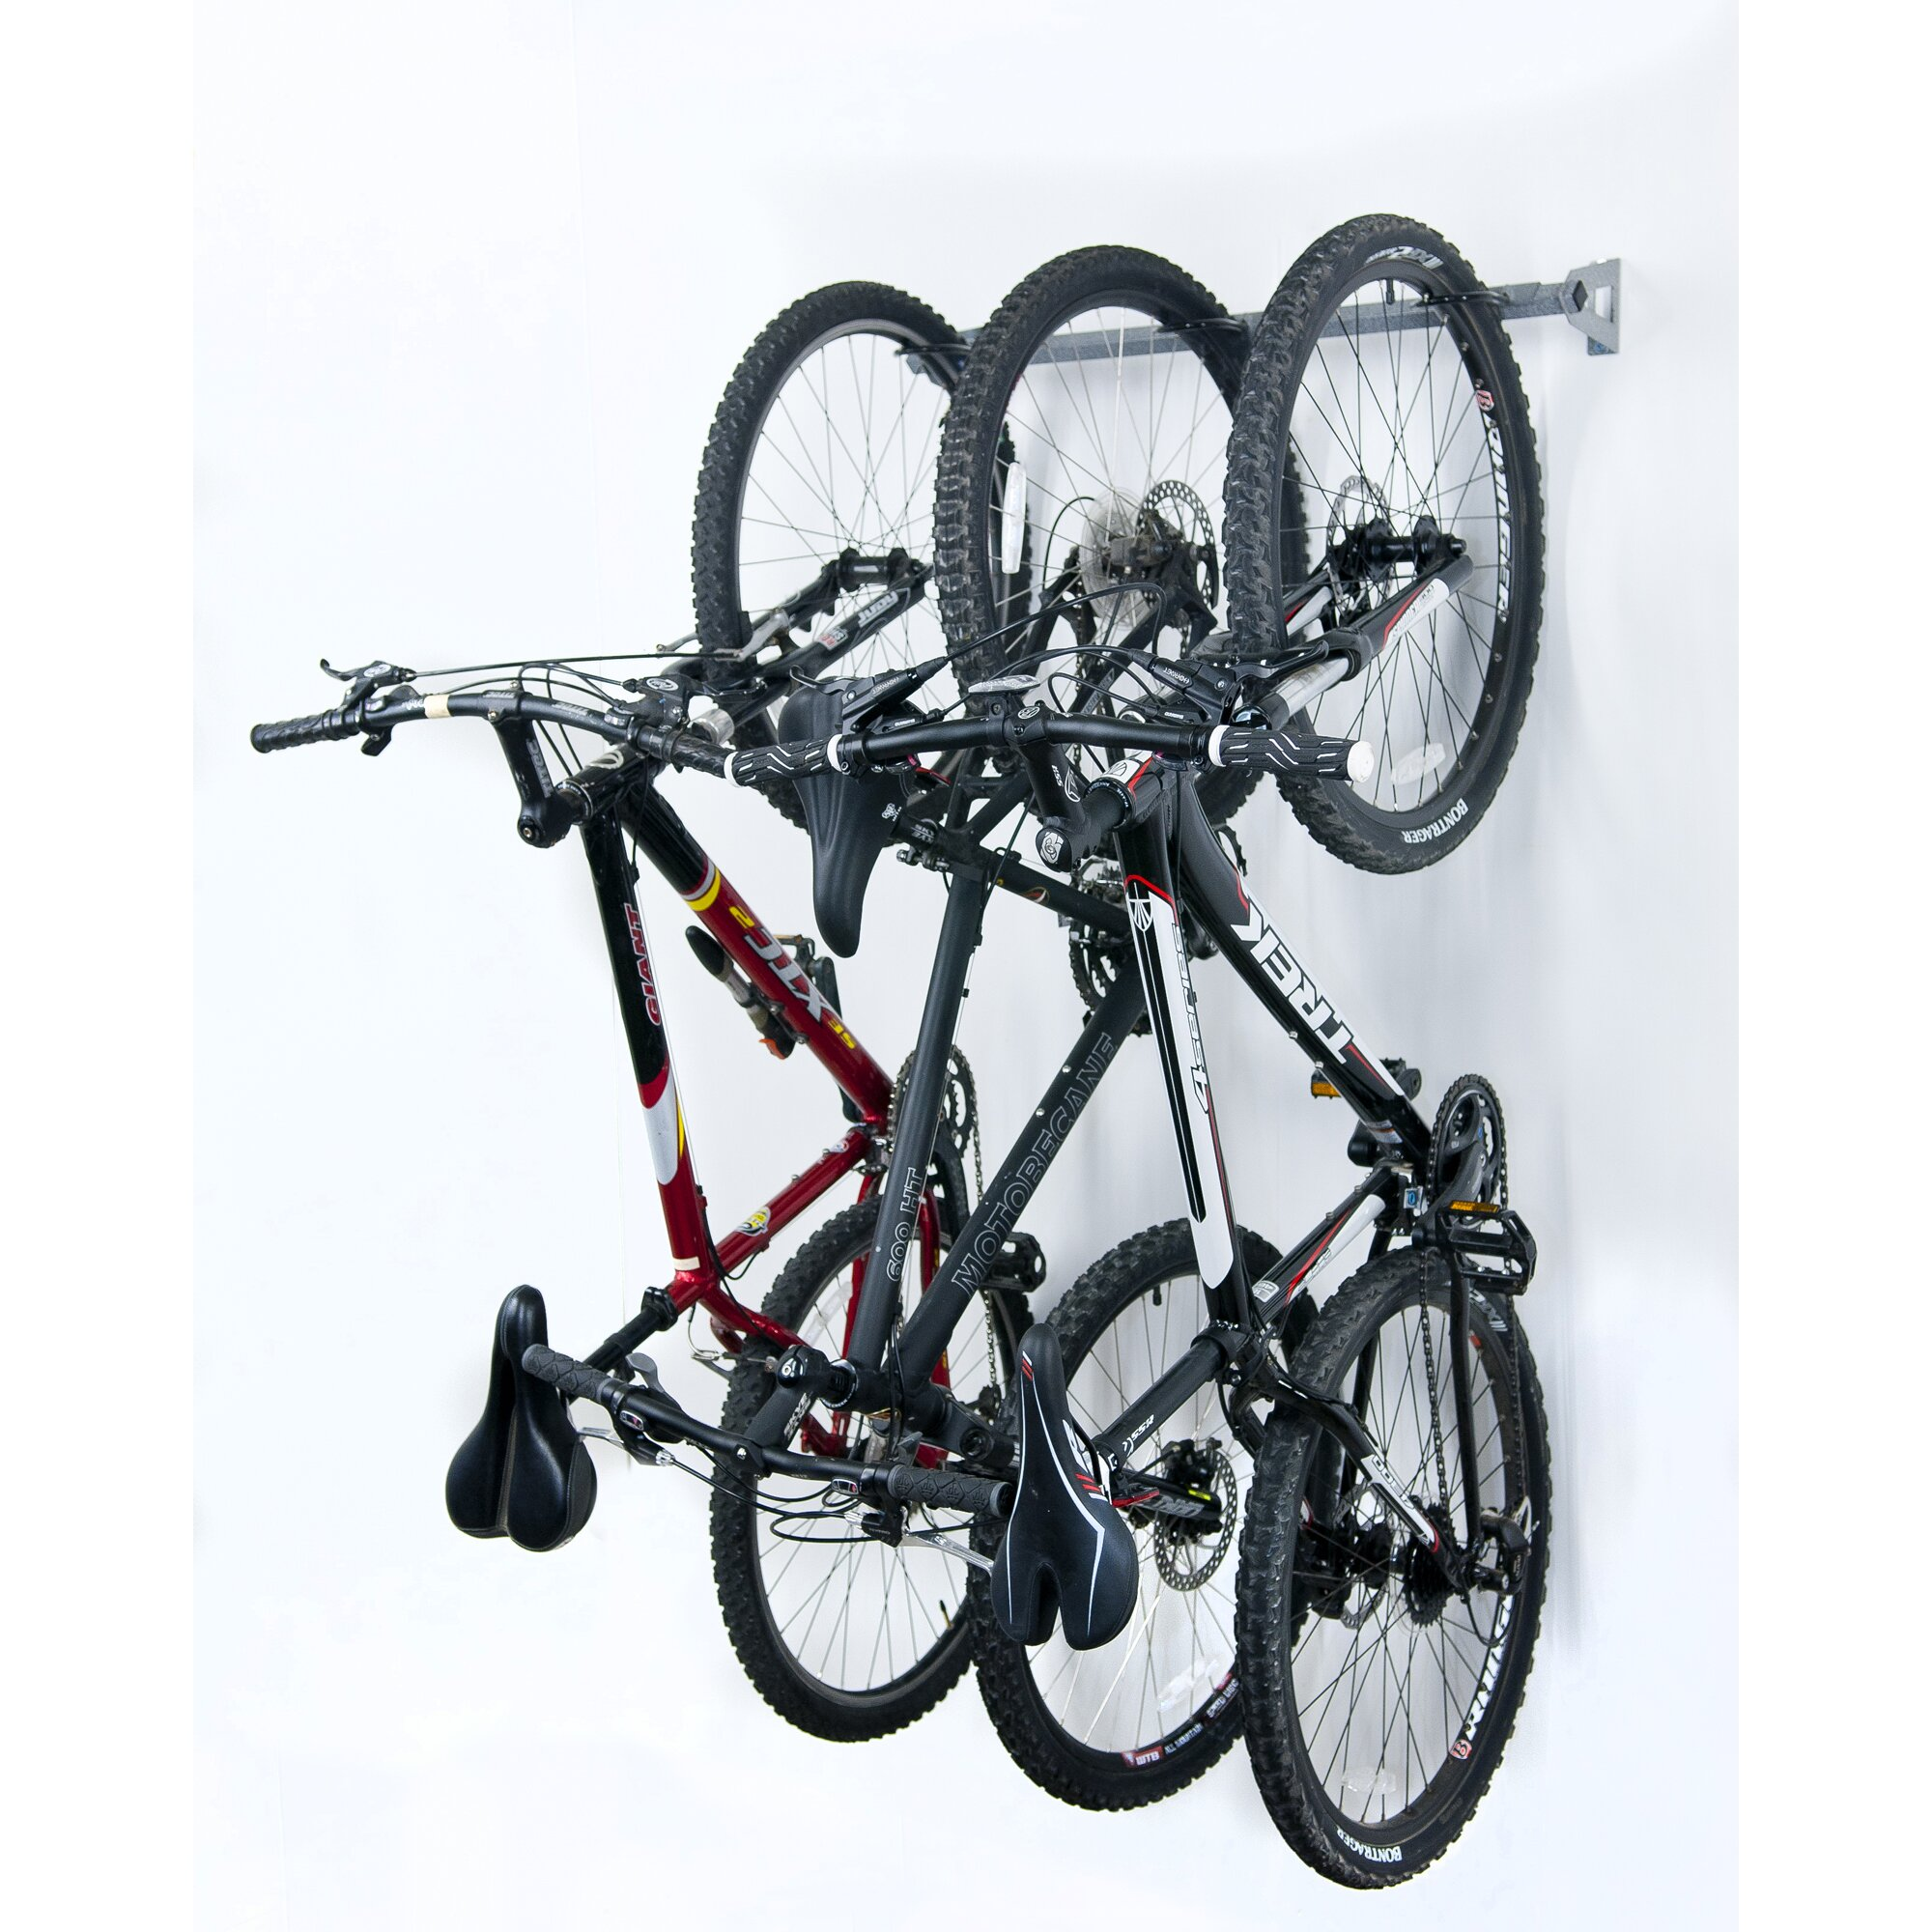 monkey bar 3 bike storage wall mounted bike rack reviews wayfair. Black Bedroom Furniture Sets. Home Design Ideas